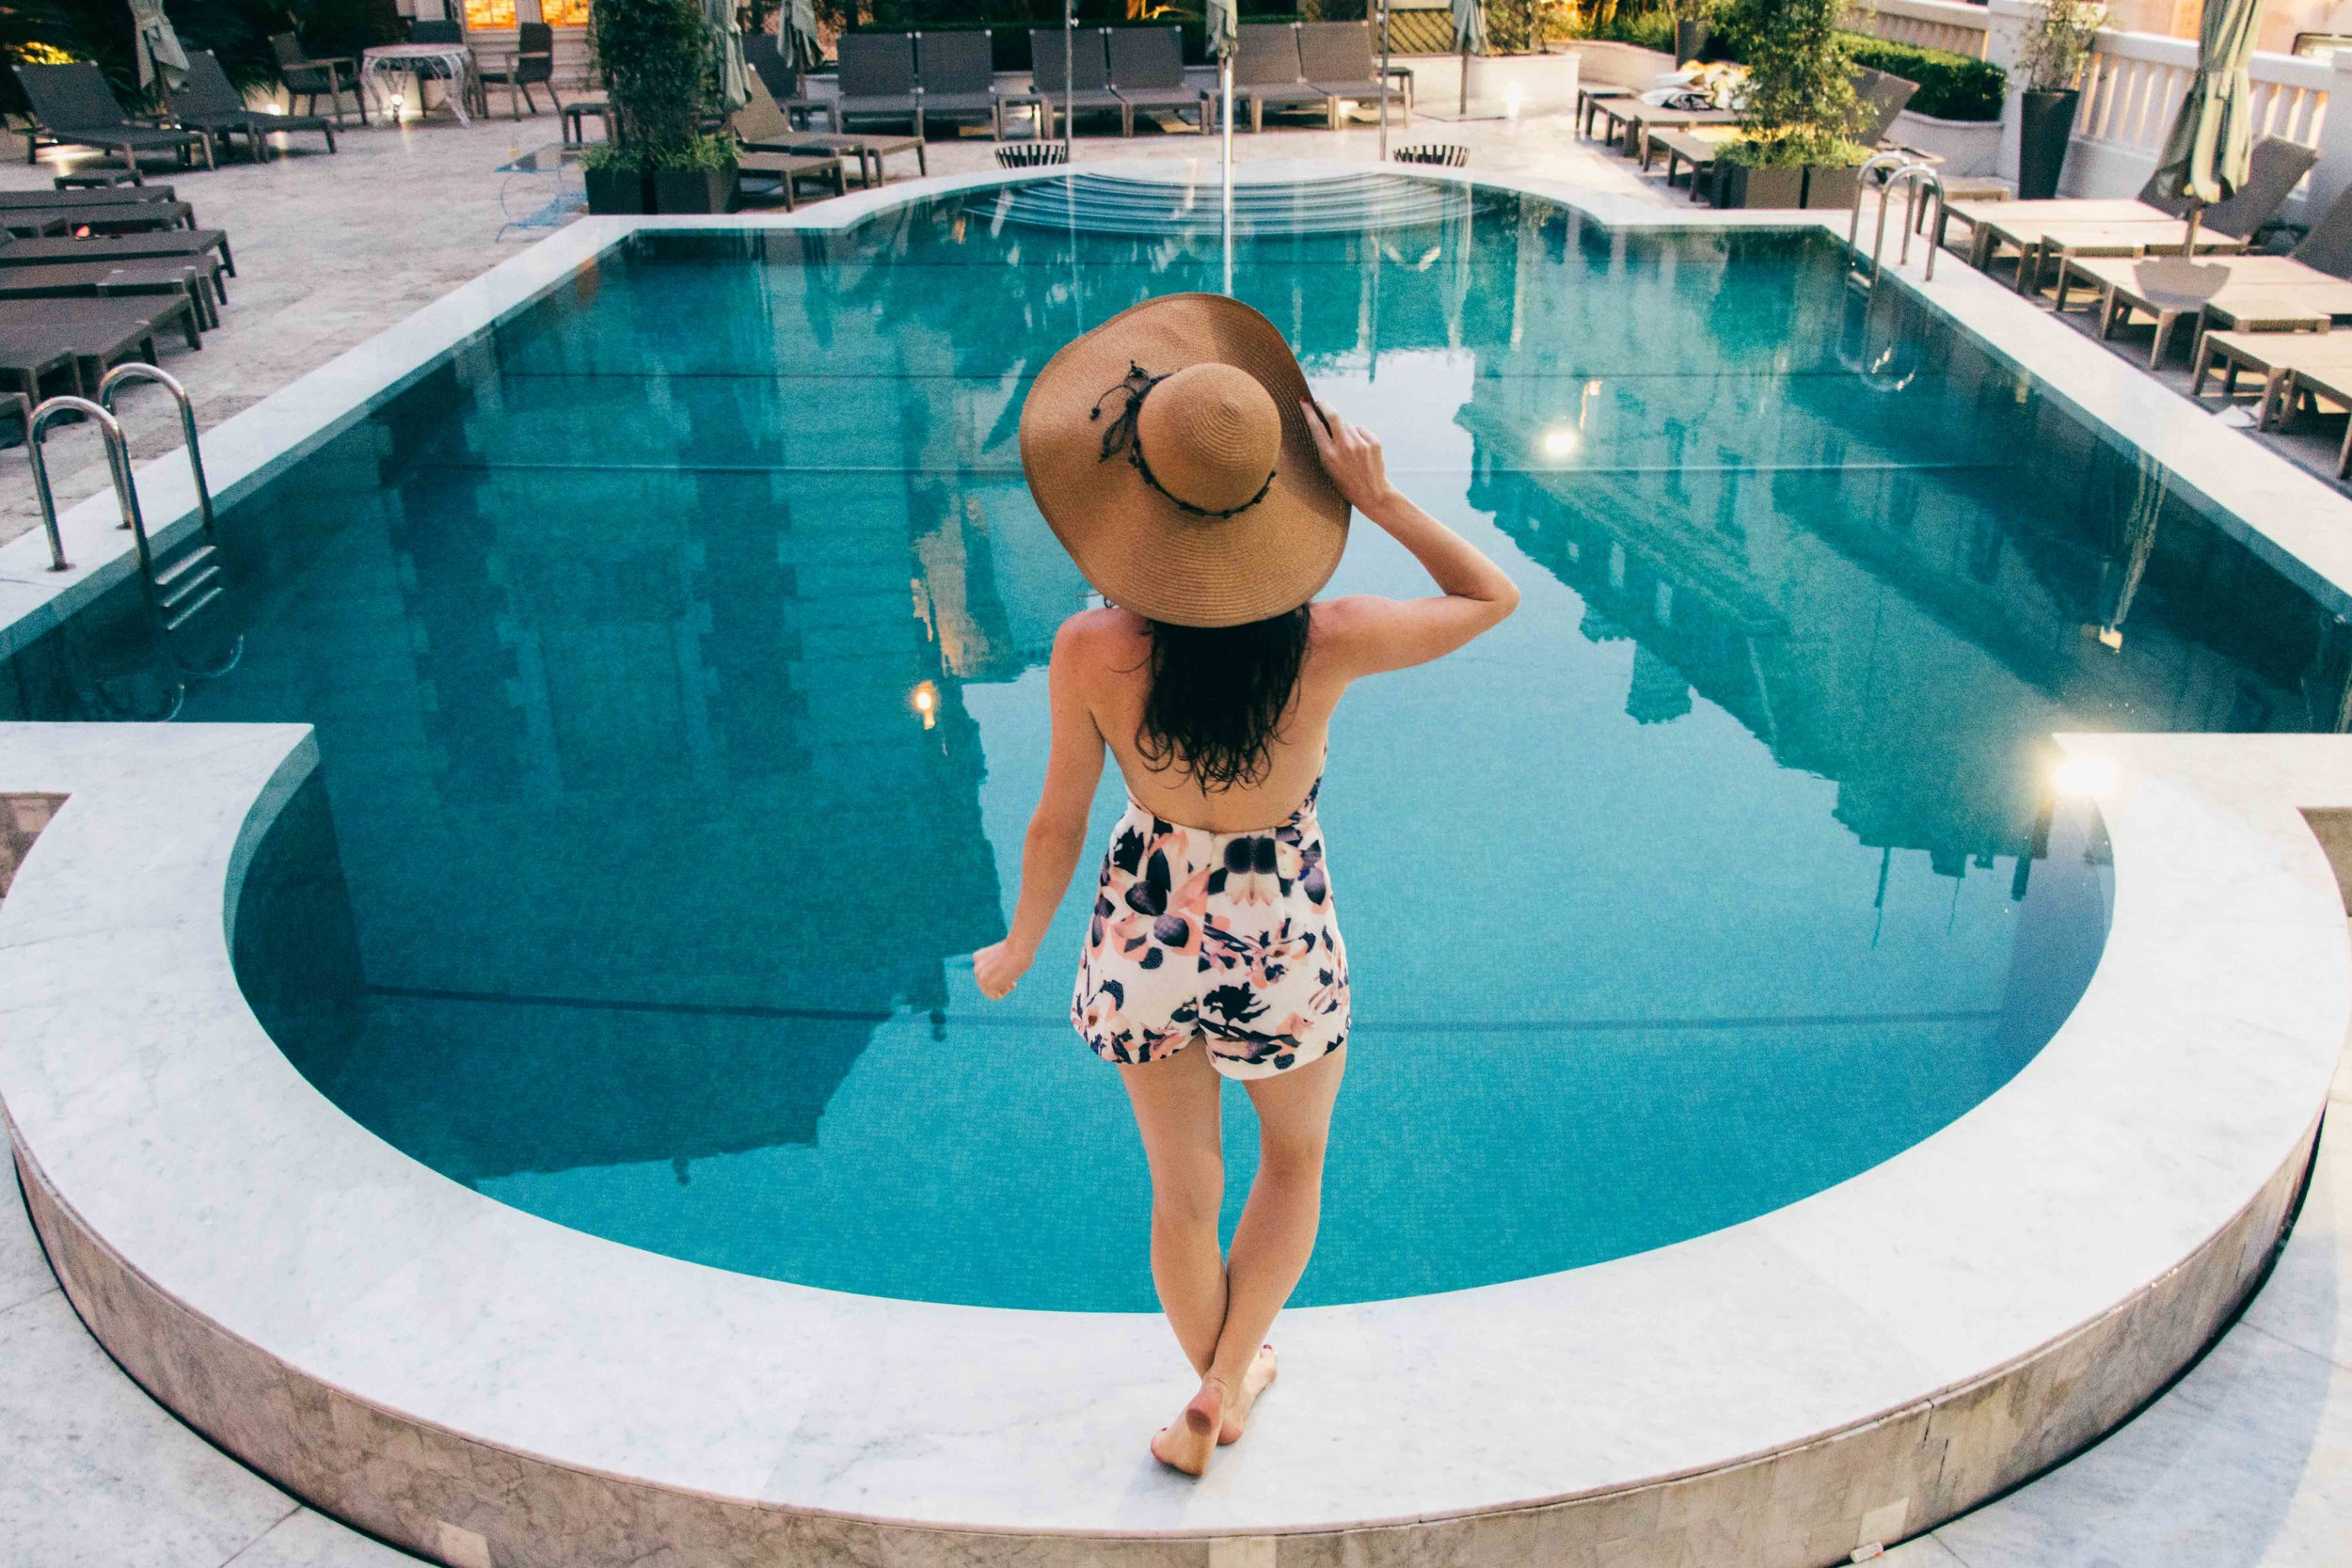 VISITING BUENOS AIRES? STOP BY THIS SECRET GARDEN POOL & FEAST